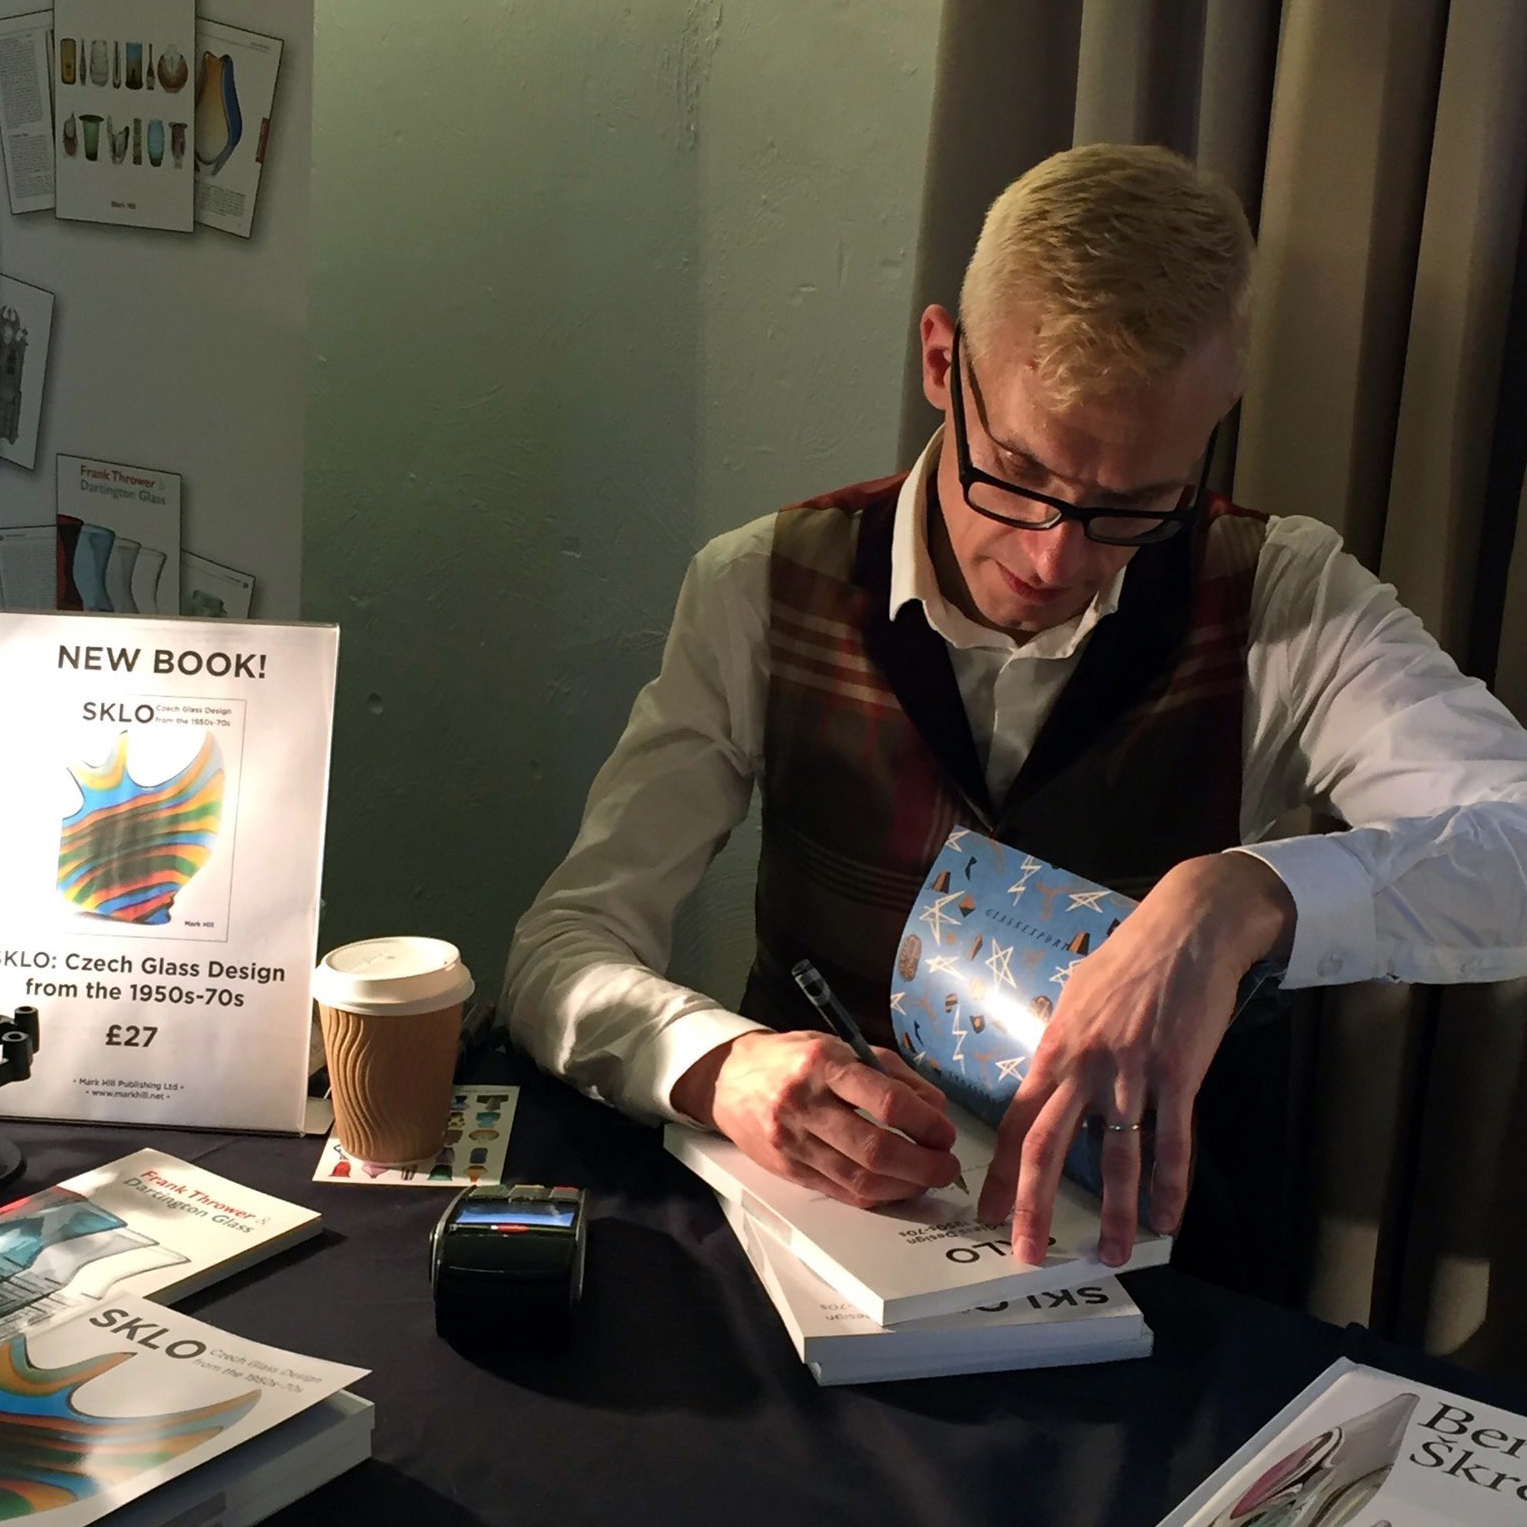 Mark Hill signing his new book on modern Czech Glass